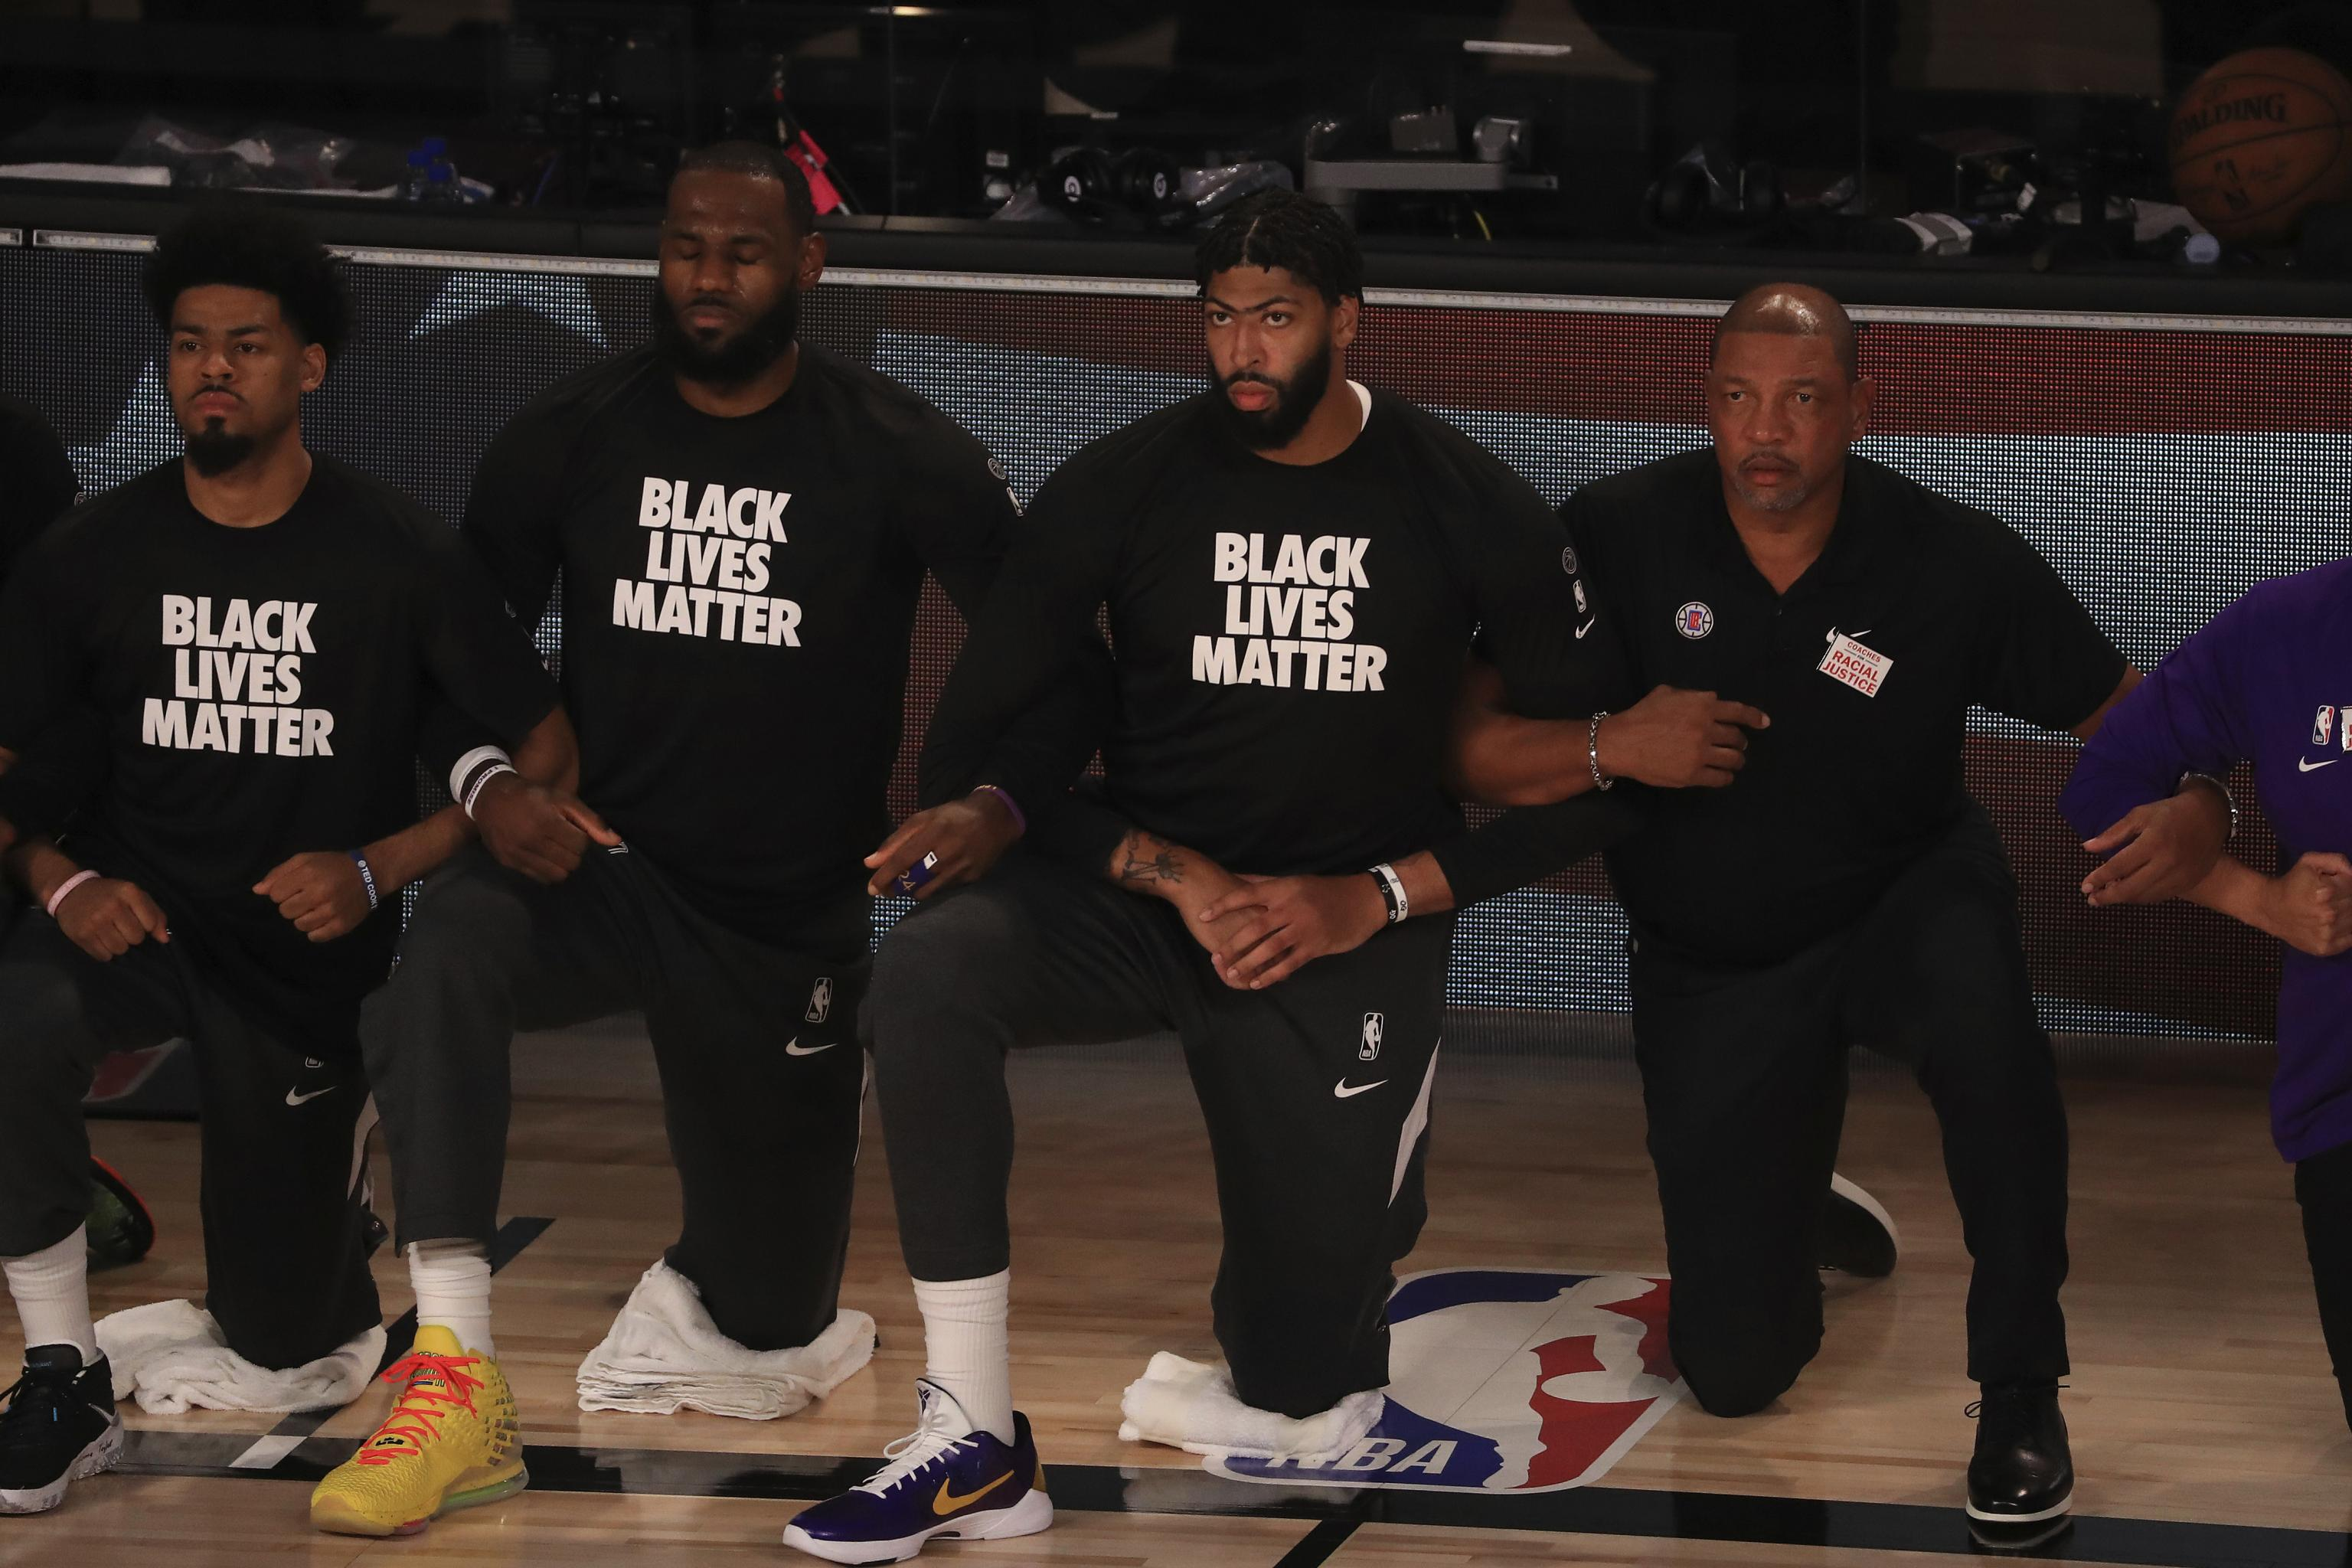 Lakers Clippers Kneel During National Anthem Before Opener At Nba Restart Bleacher Report Latest News Videos And Highlights